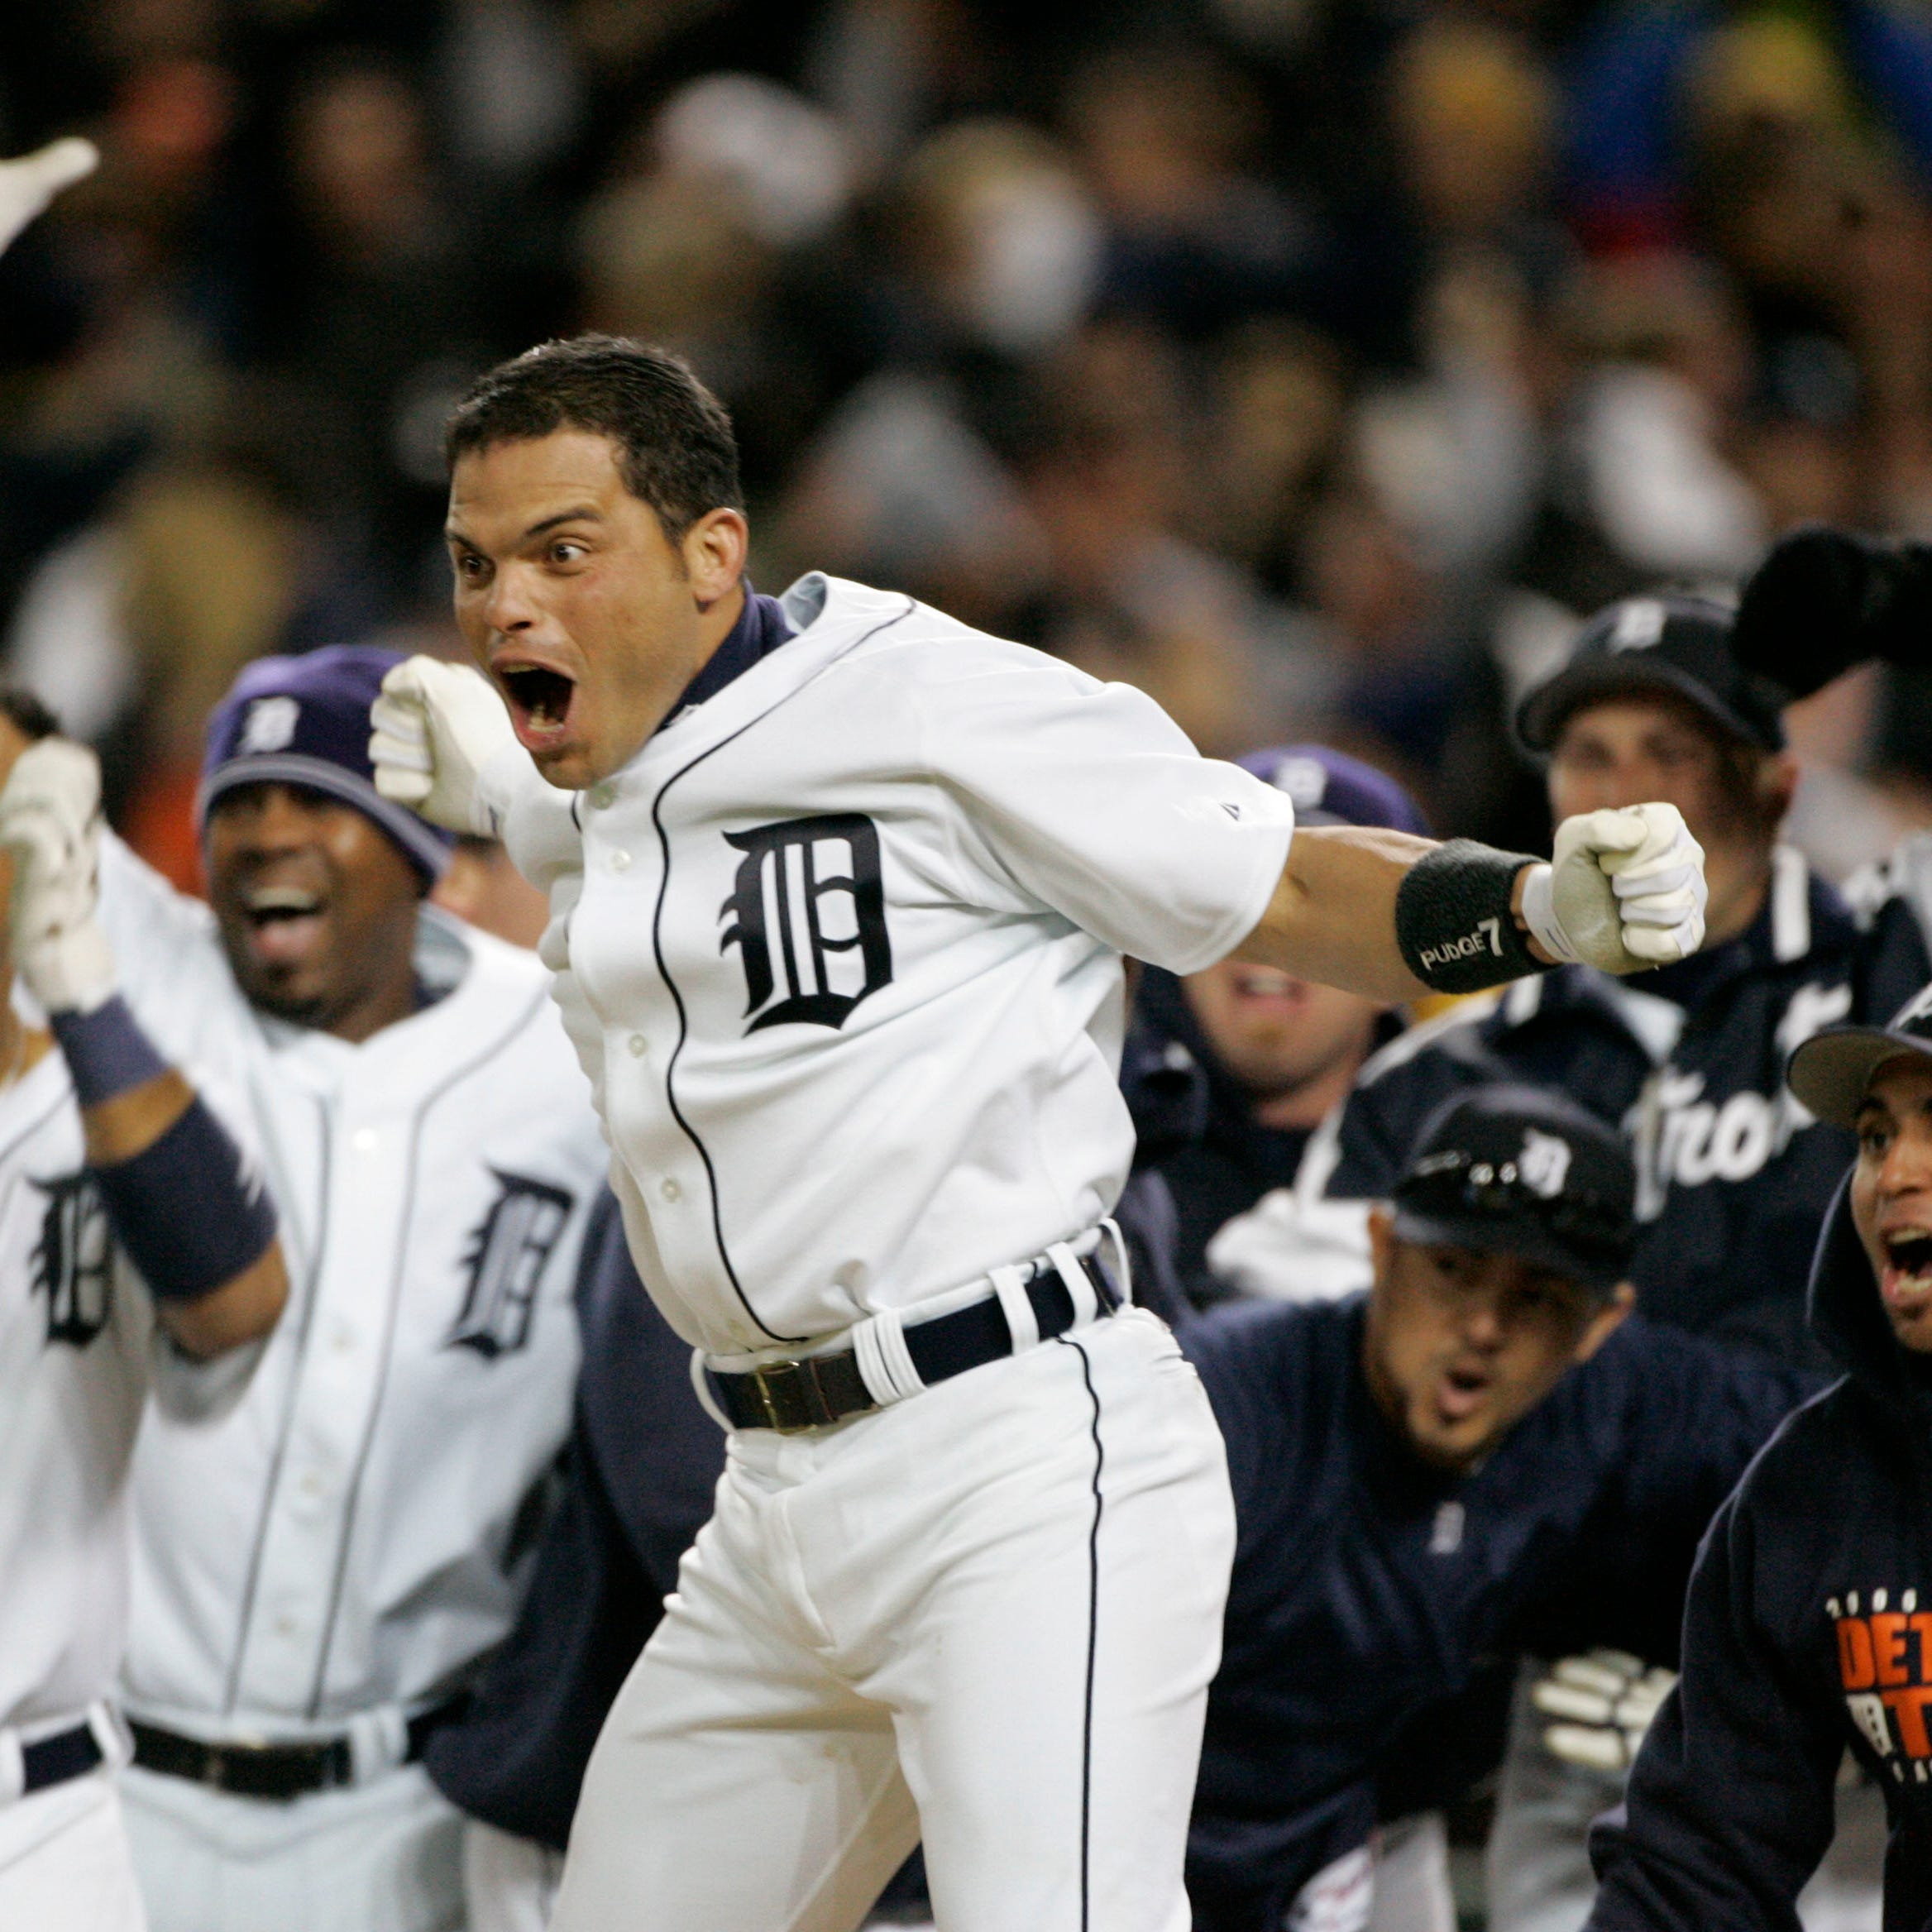 As Comerica Park kicks off 20th season, here are 20 classic memories